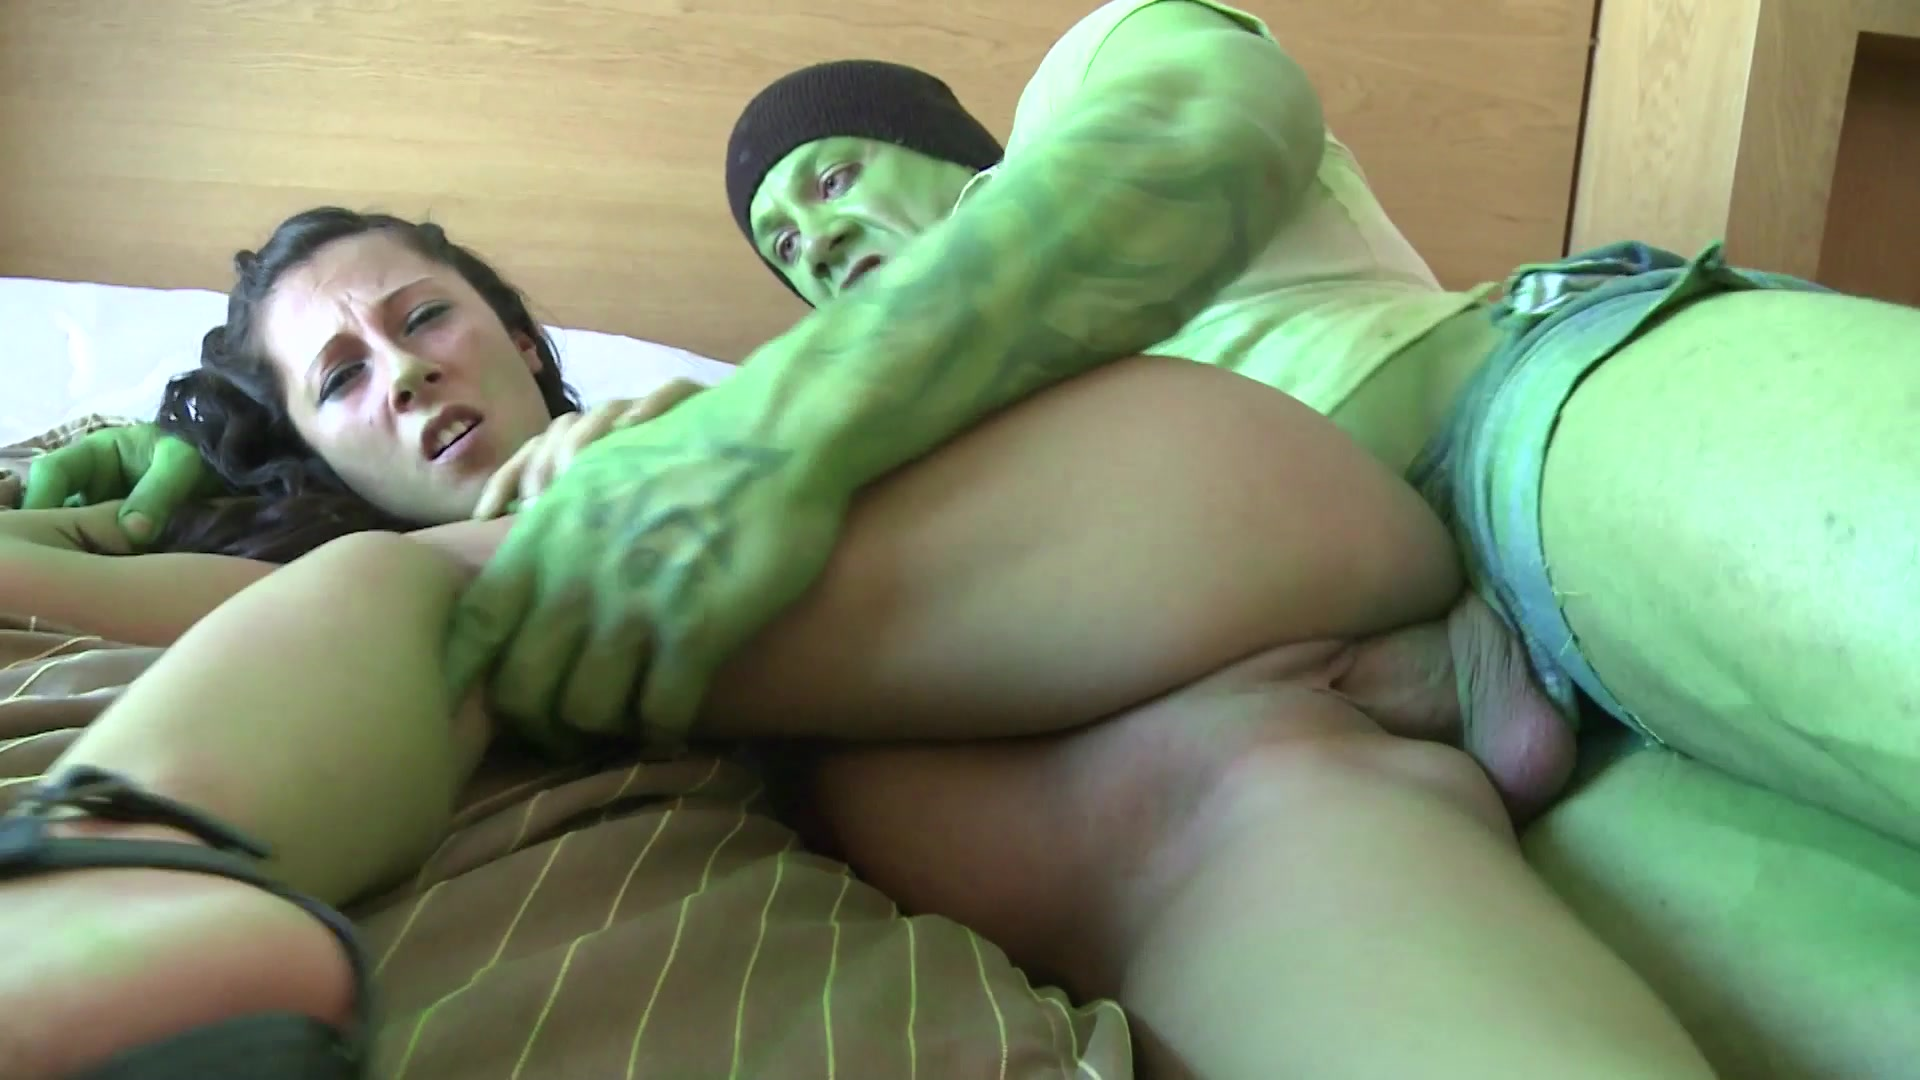 Brunette Teen Gets Her Pussy Pounded by the HULK Length: 26 min